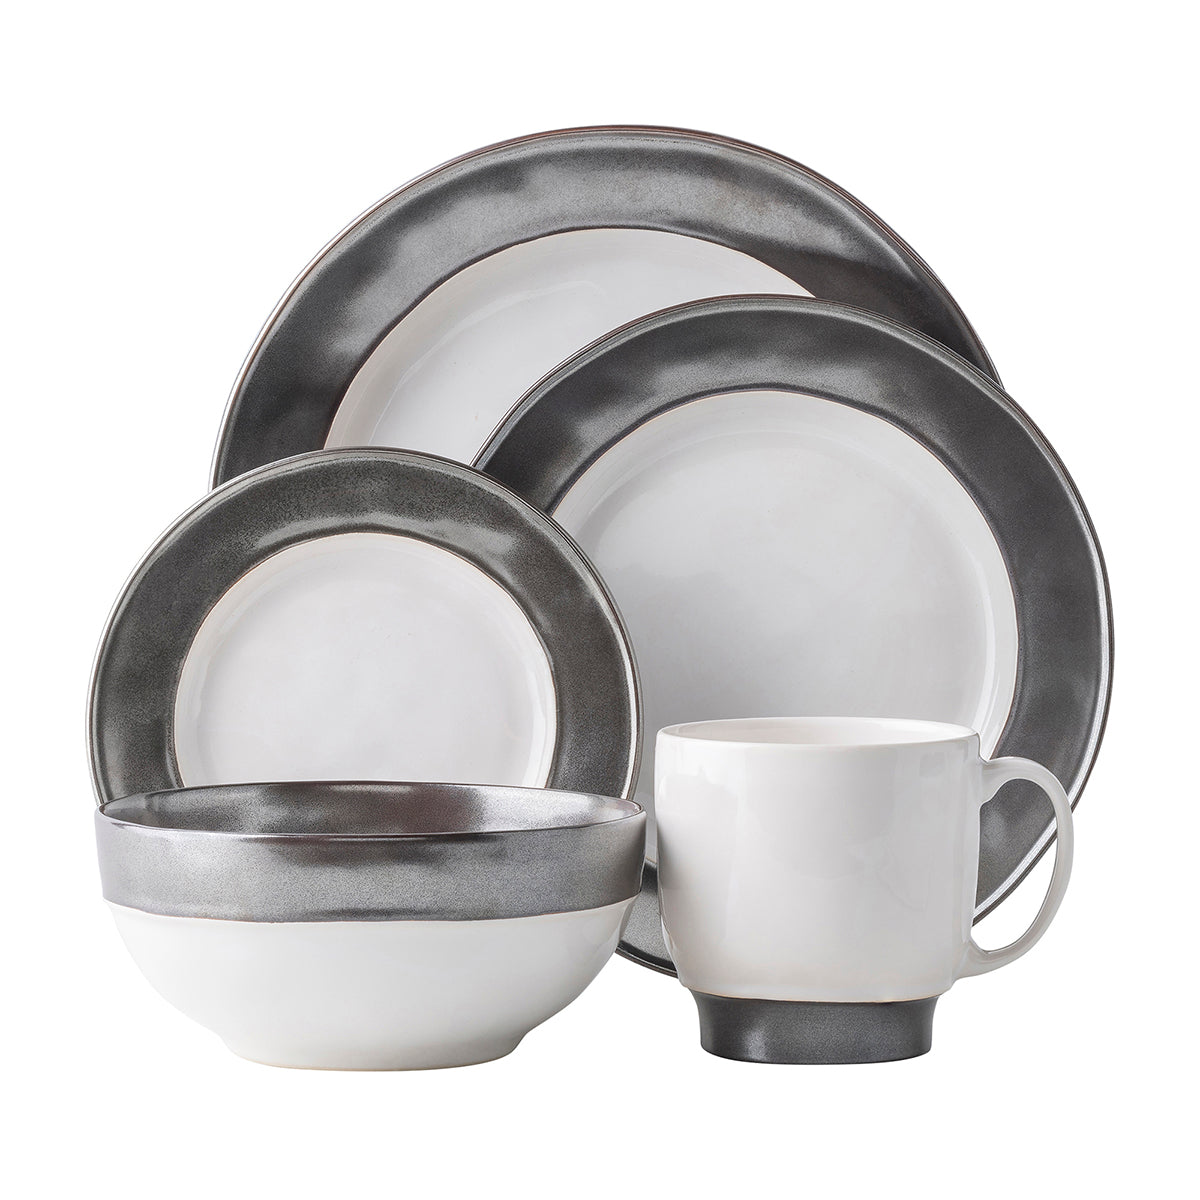 Emerson White/Pewter Place Setting, Set of 5